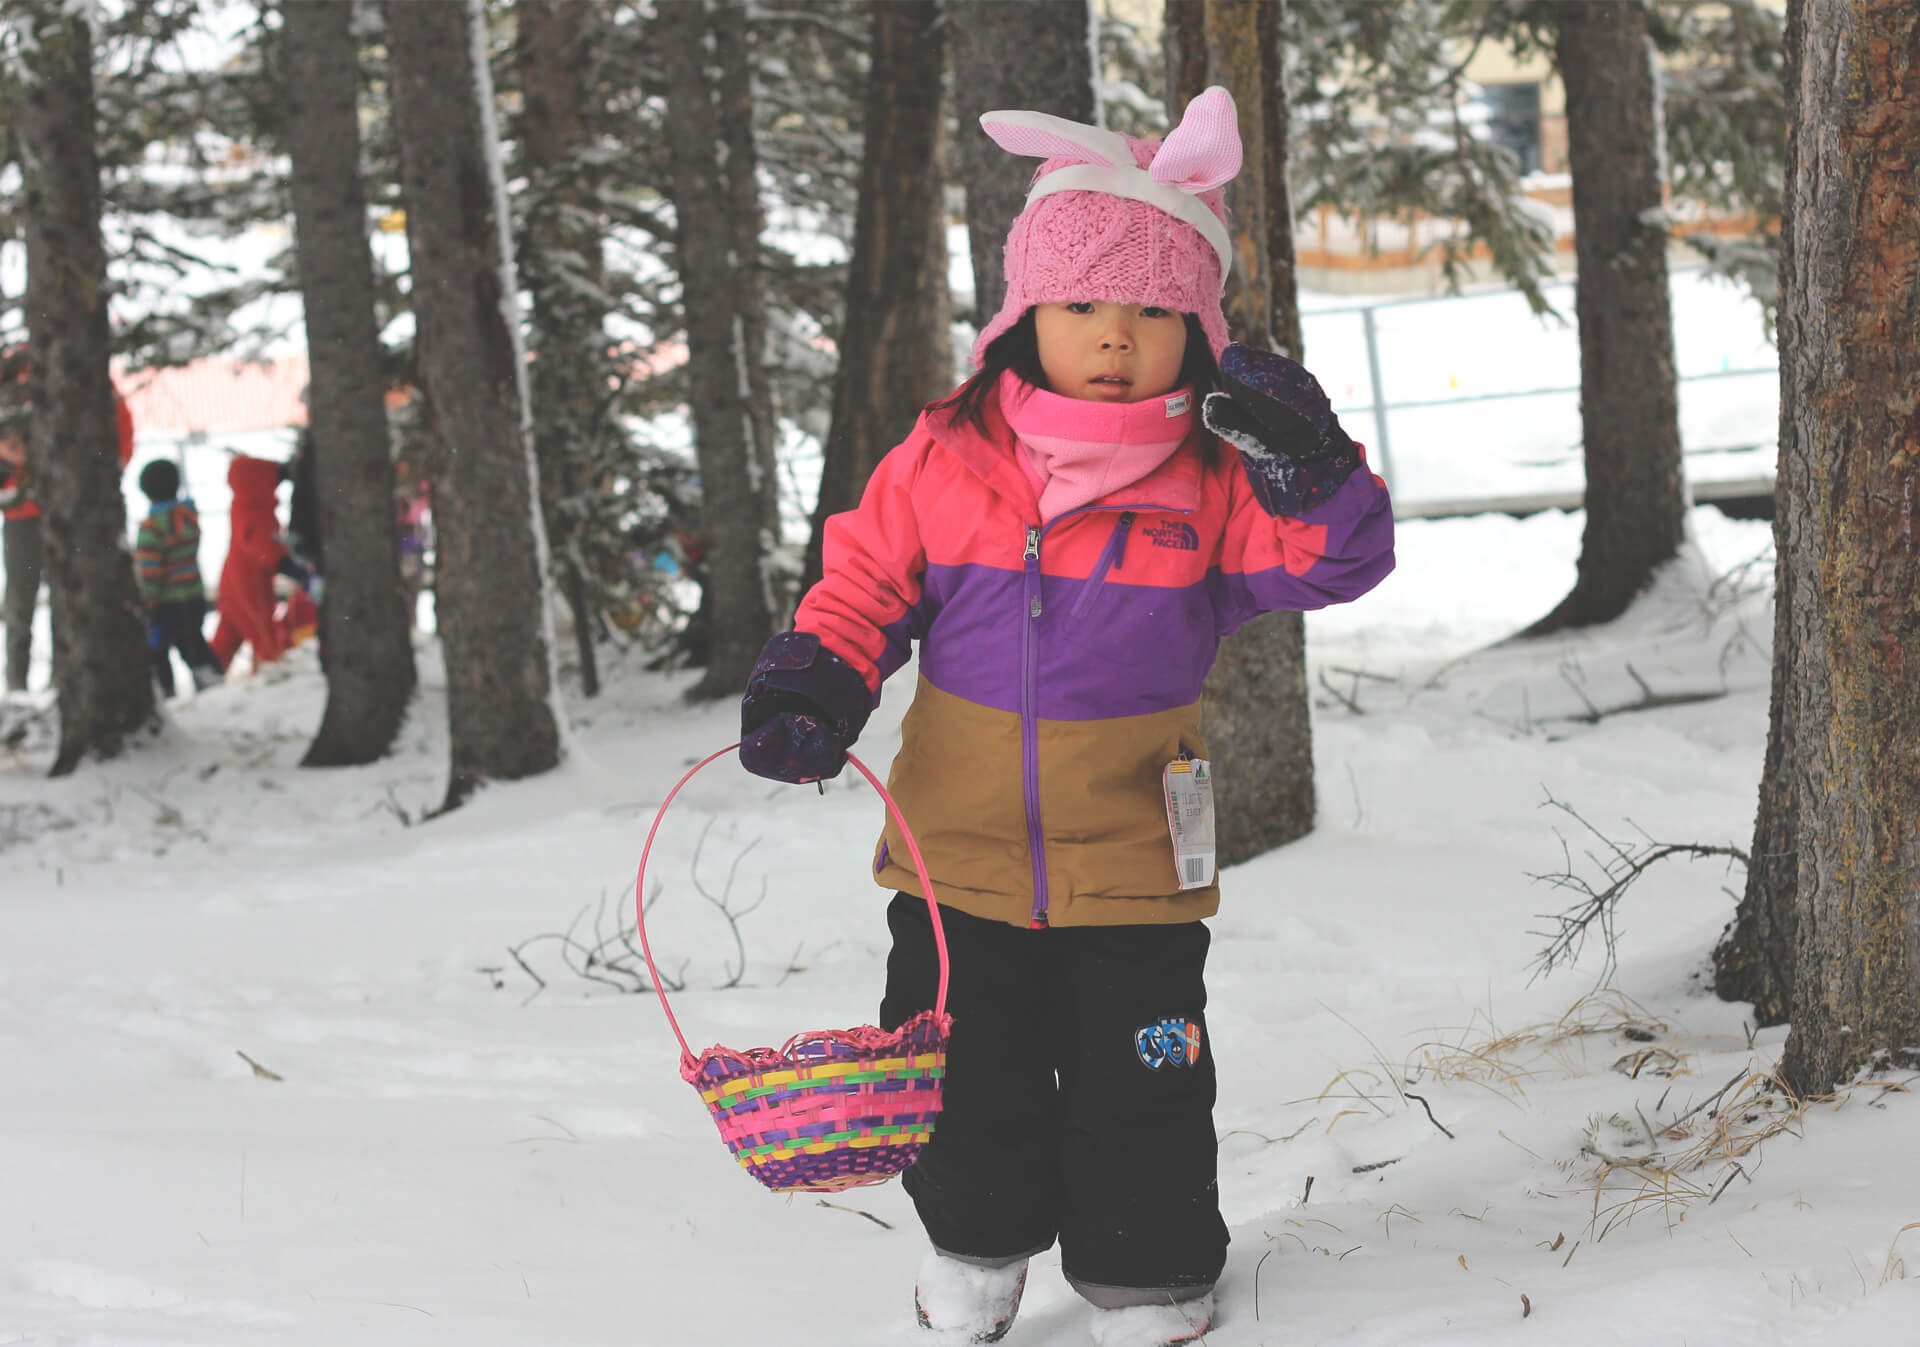 Toddler easter egg hunting at Norquay